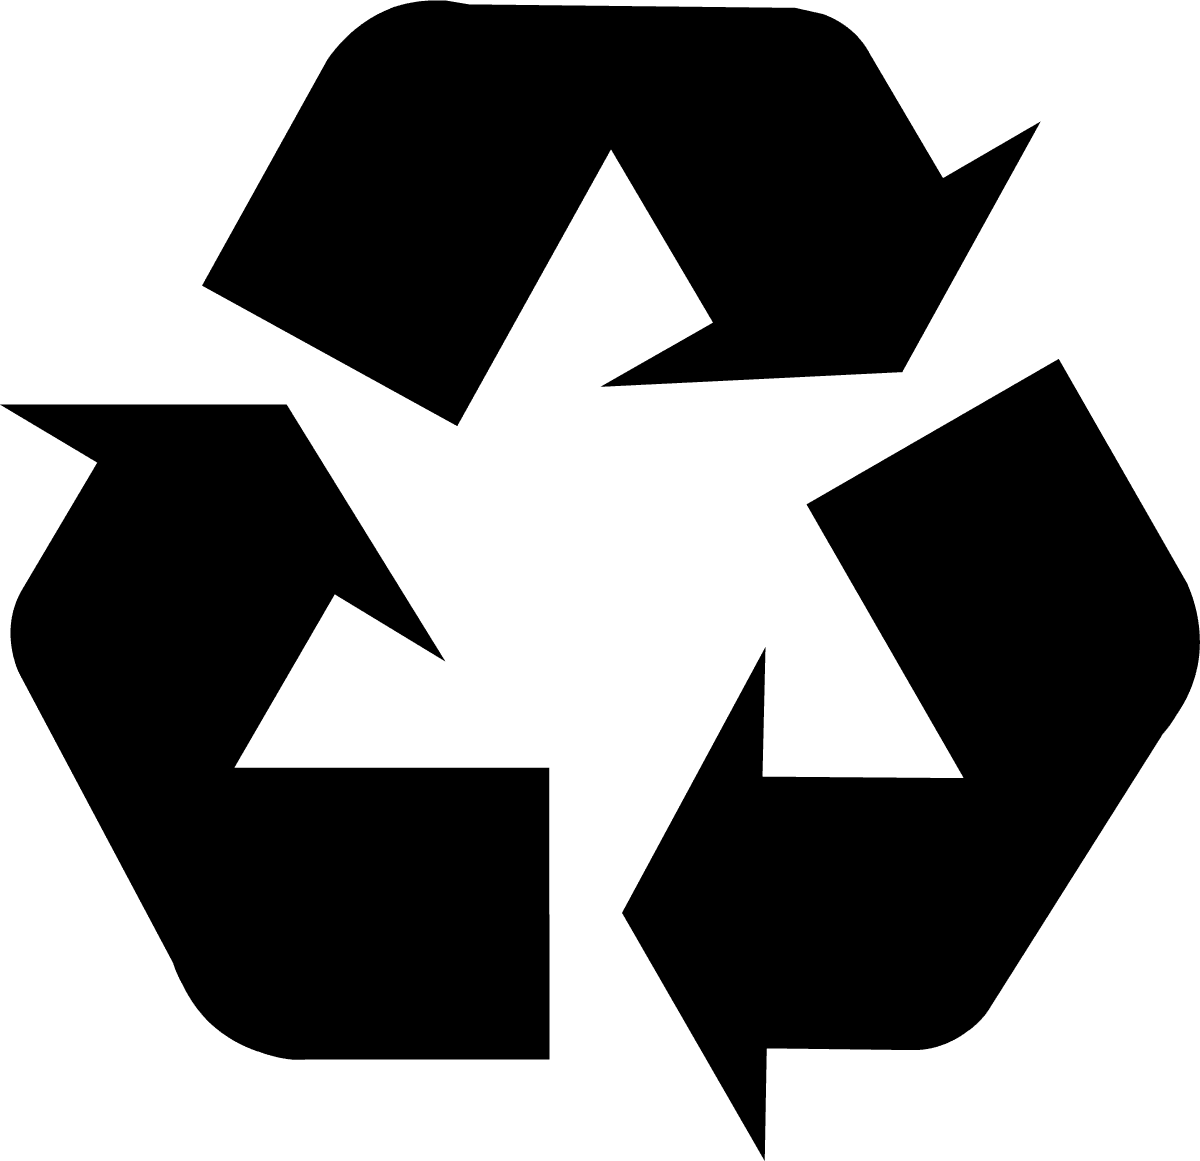 recycling-symbol-icon-solid-black